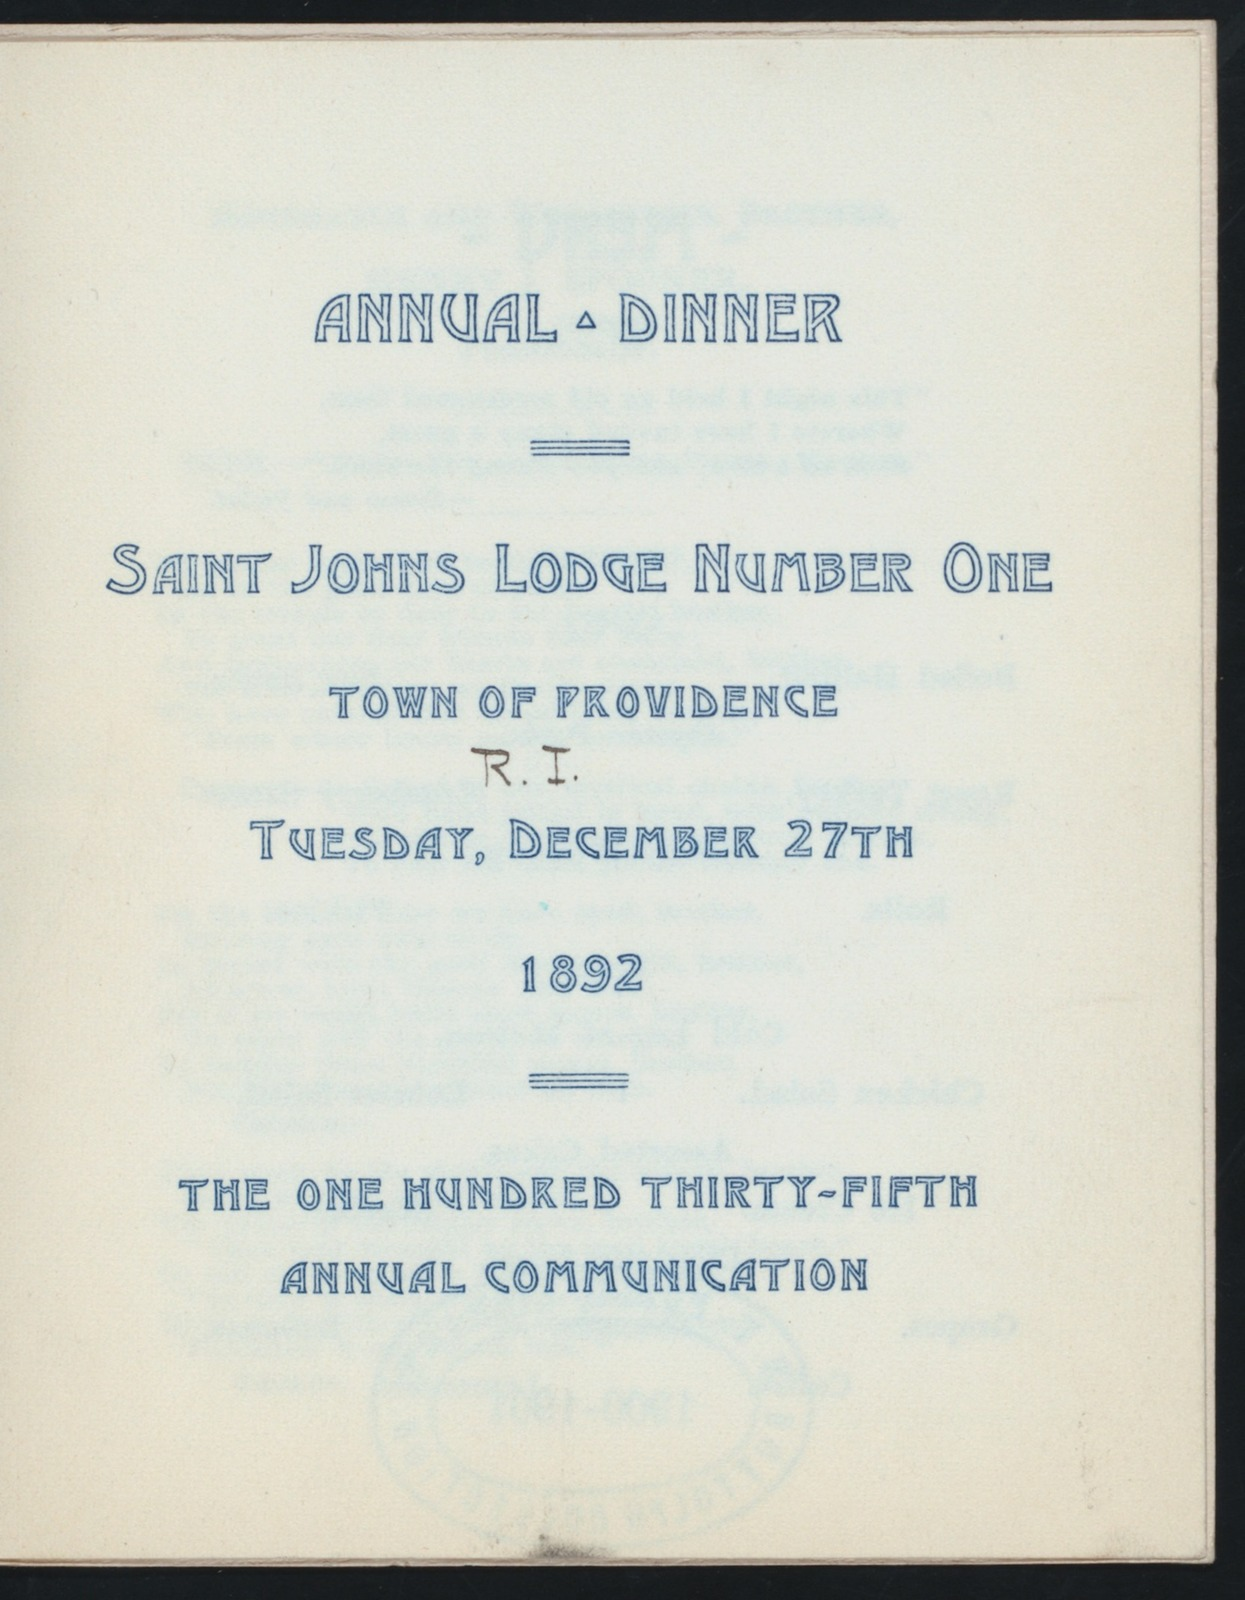 """135TH ANNUAL COMMUNICATION AND DINNER [held by] SAINT JOHNS LODGE NUMBER ONE [at] """"TOWN OF PROVIDENCE,[R.I.]"""""""